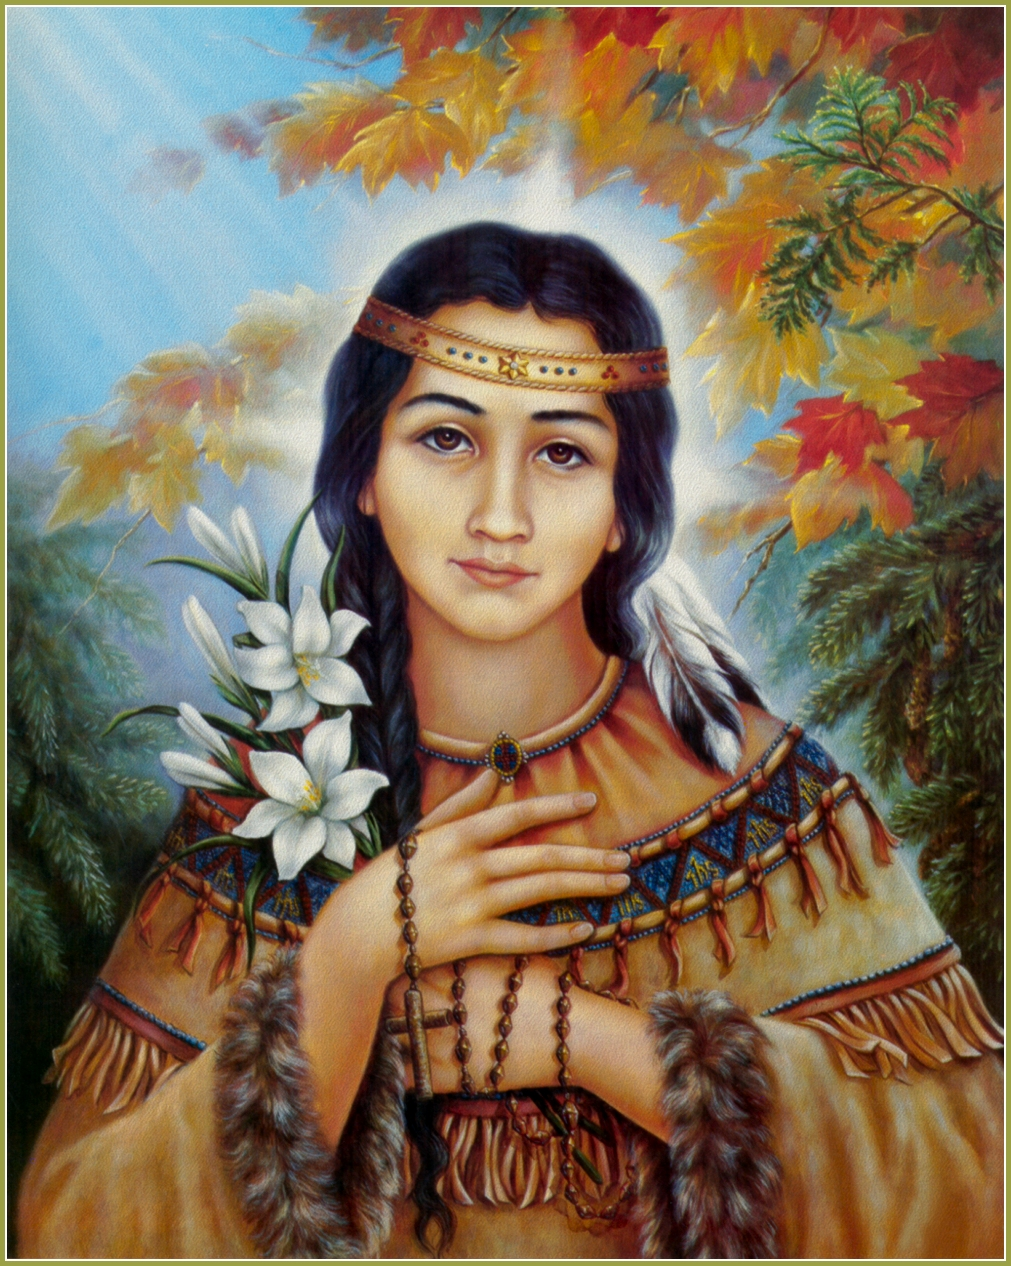 VIDEO: Saint Kateri Tekakwitha: Mohawk Mystic of North America